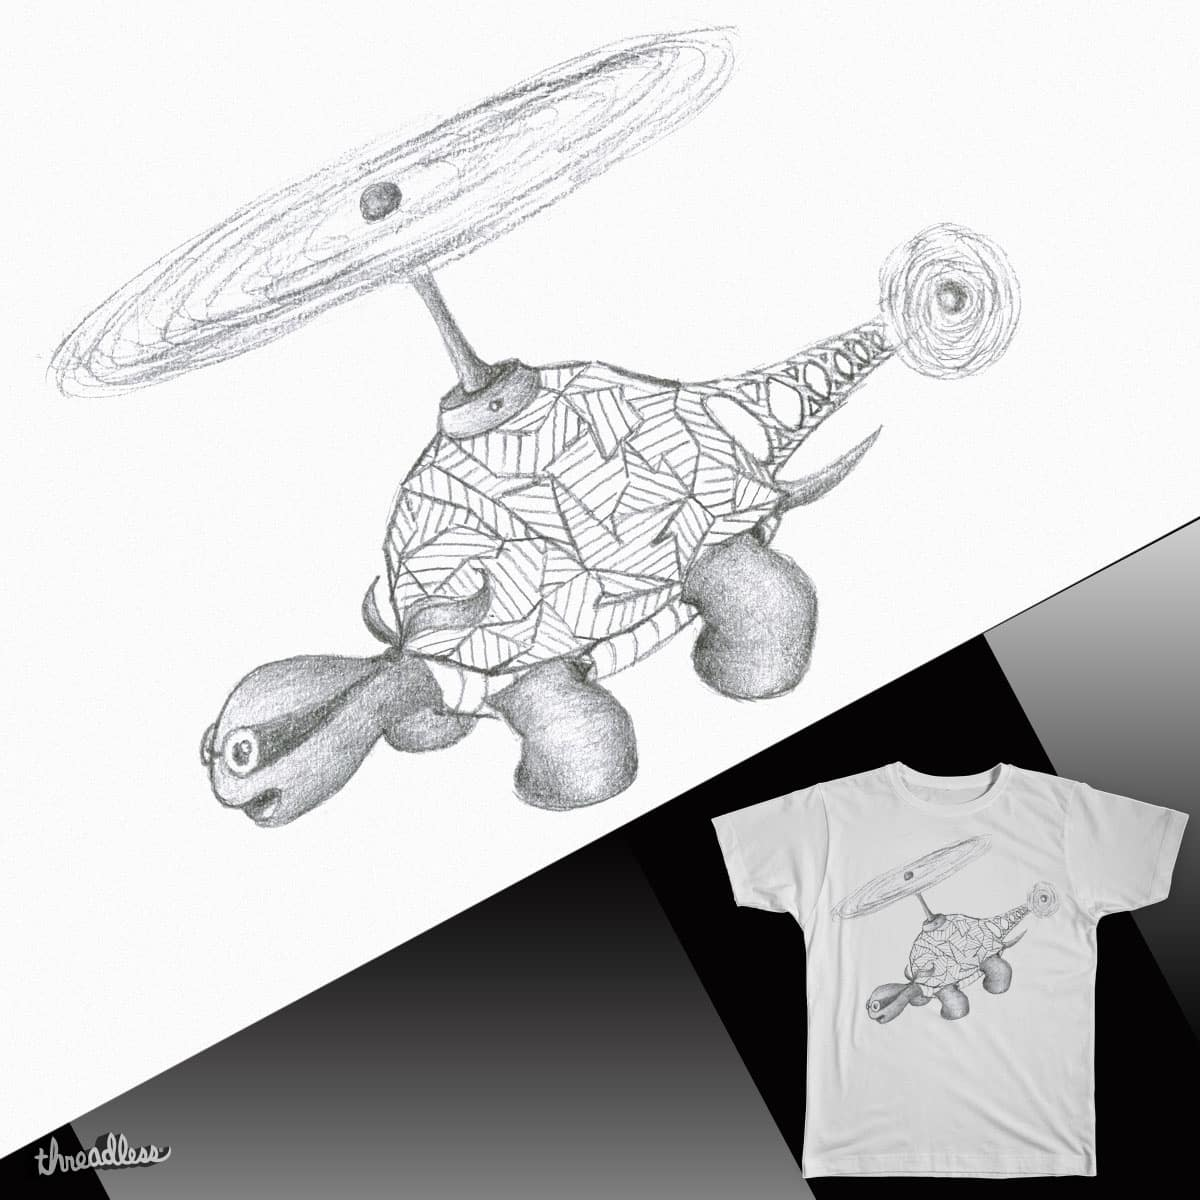 Turtle-Copter by Miloriginal on Threadless